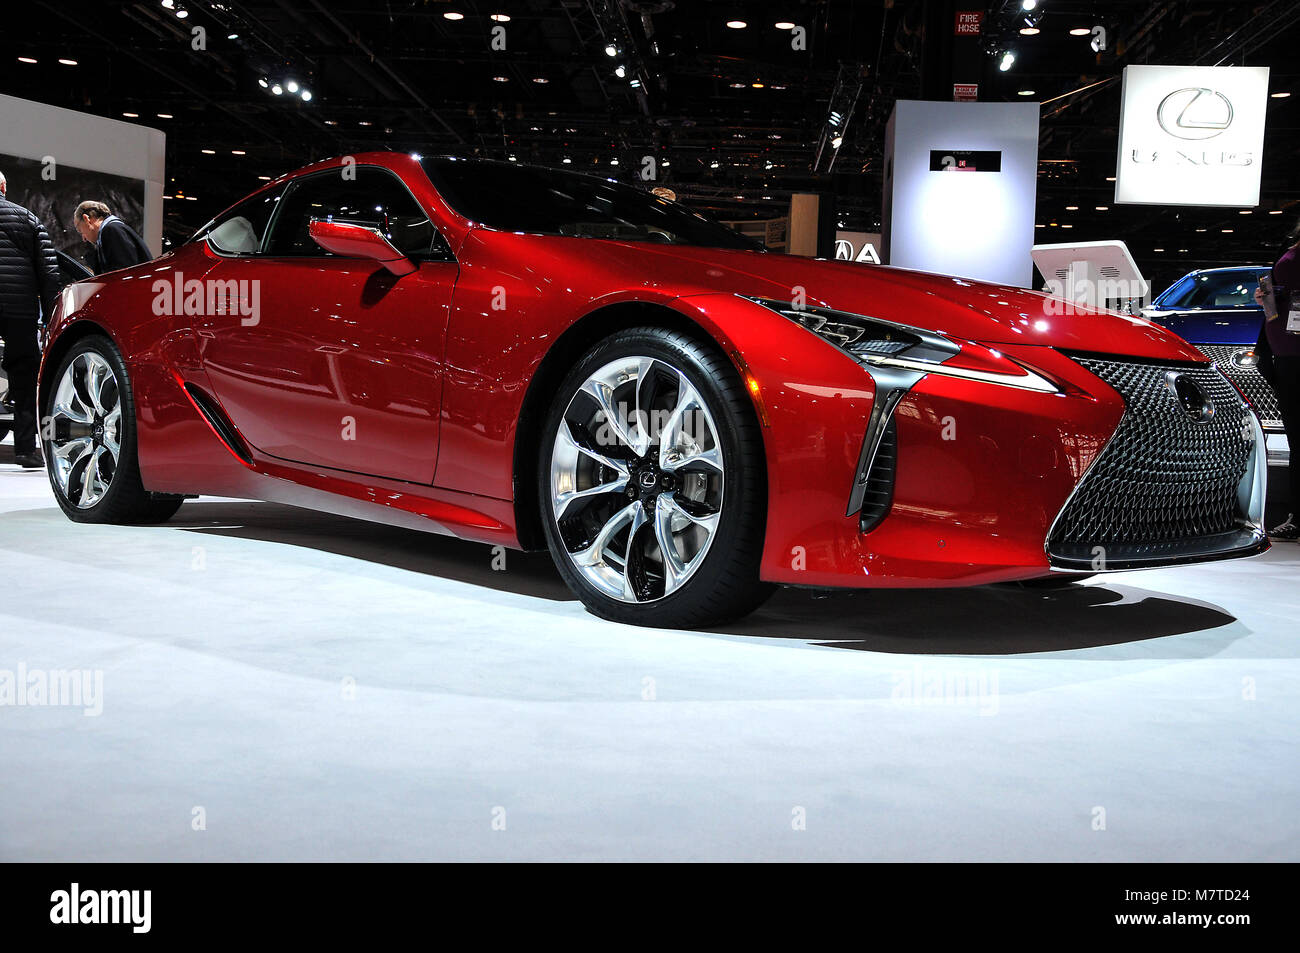 The 2018 Chicago Auto Show Press Preview At McCormick Place In Chicago IL,  USA Featuring